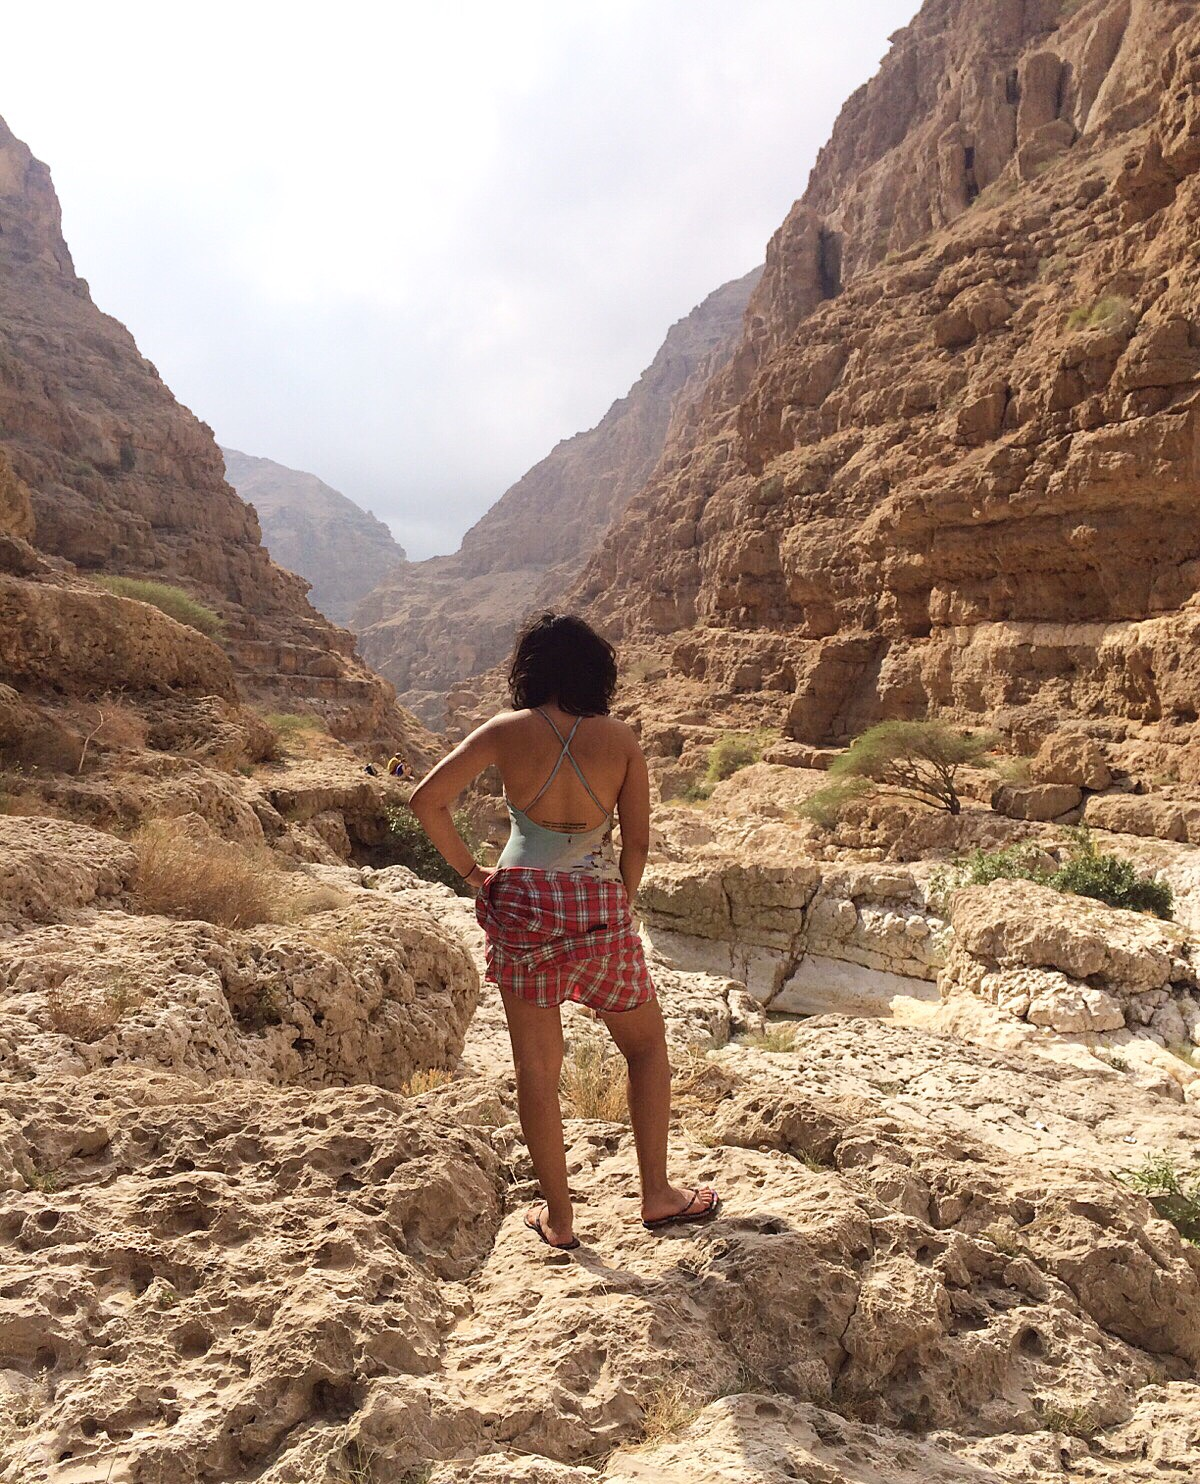 Solo female traveler from Kuwait and Oman - Sundes in Wadi Shaab, Oman